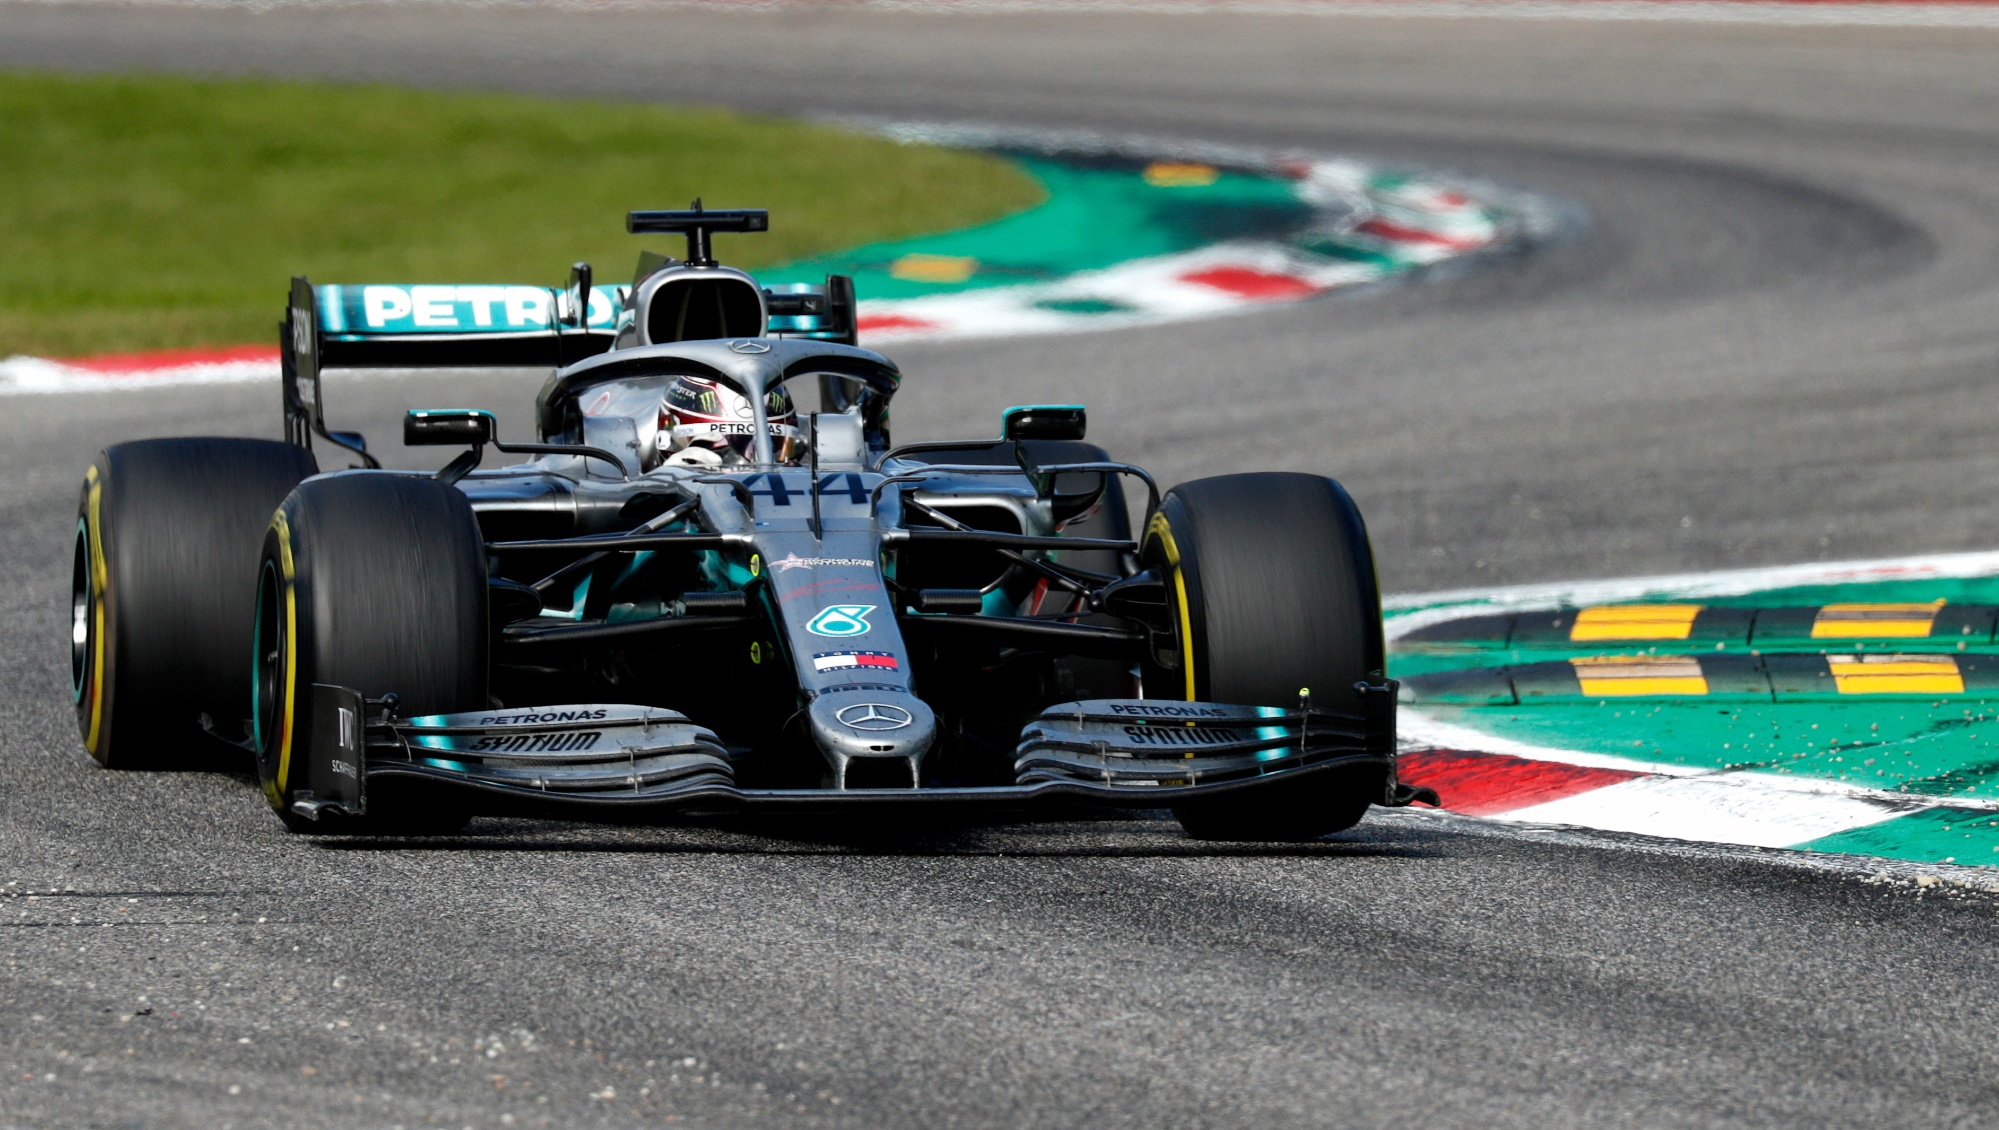 F1 live stream: how to watch every 2020 Grand Prix online from anywhere